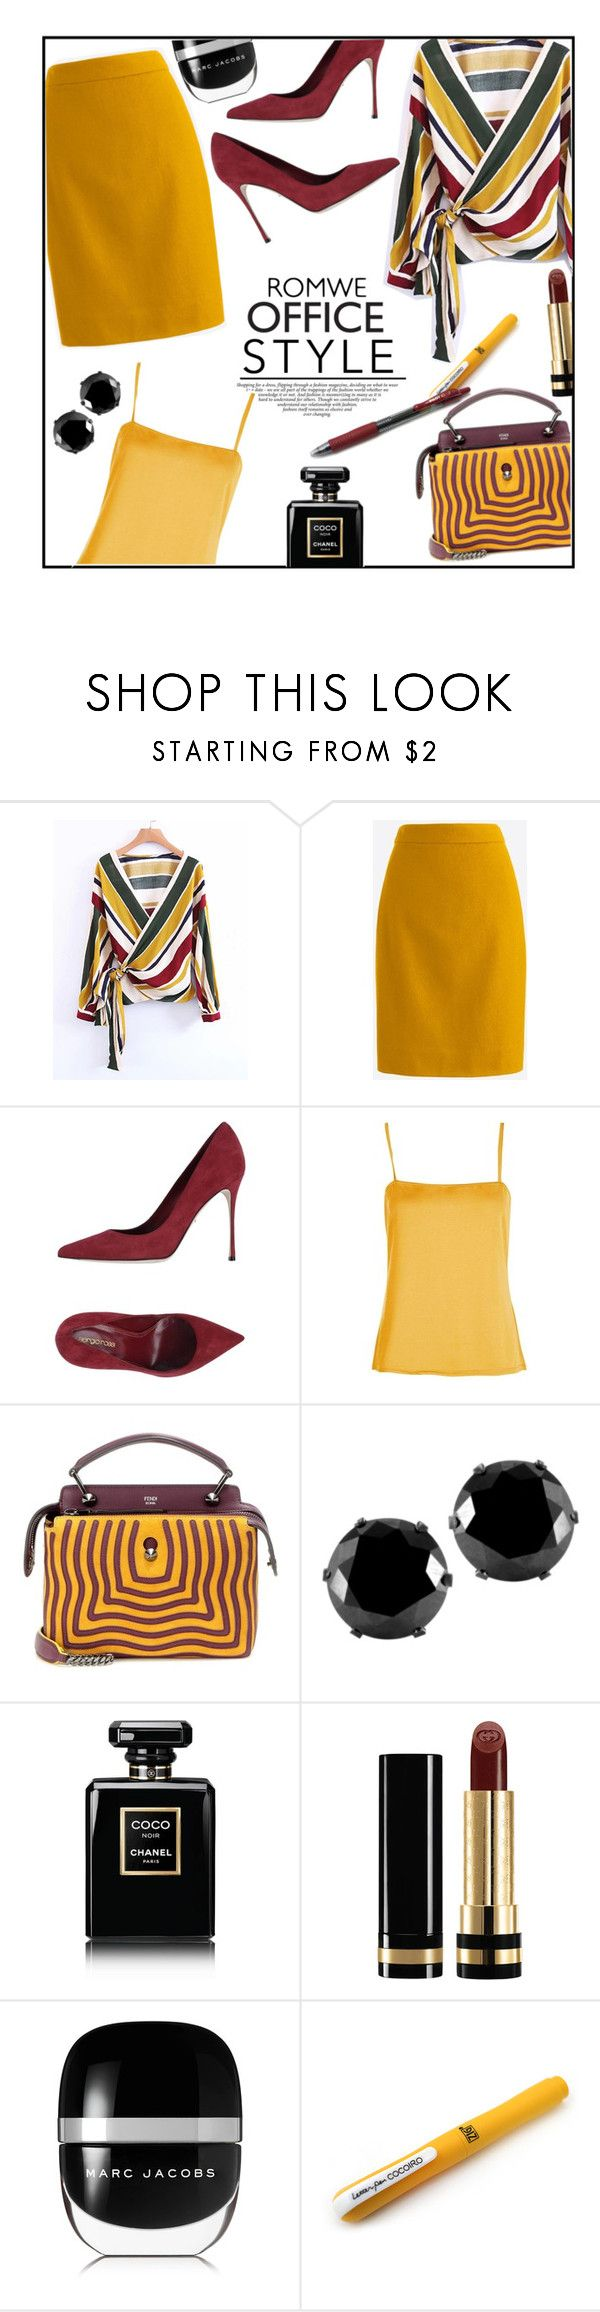 """""""OFFICE style"""" by jckallan ❤ liked on Polyvore featuring Sergio Rossi, Boohoo, Fendi, West Coast Jewelry, Chanel, Gucci and Marc Jacobs"""